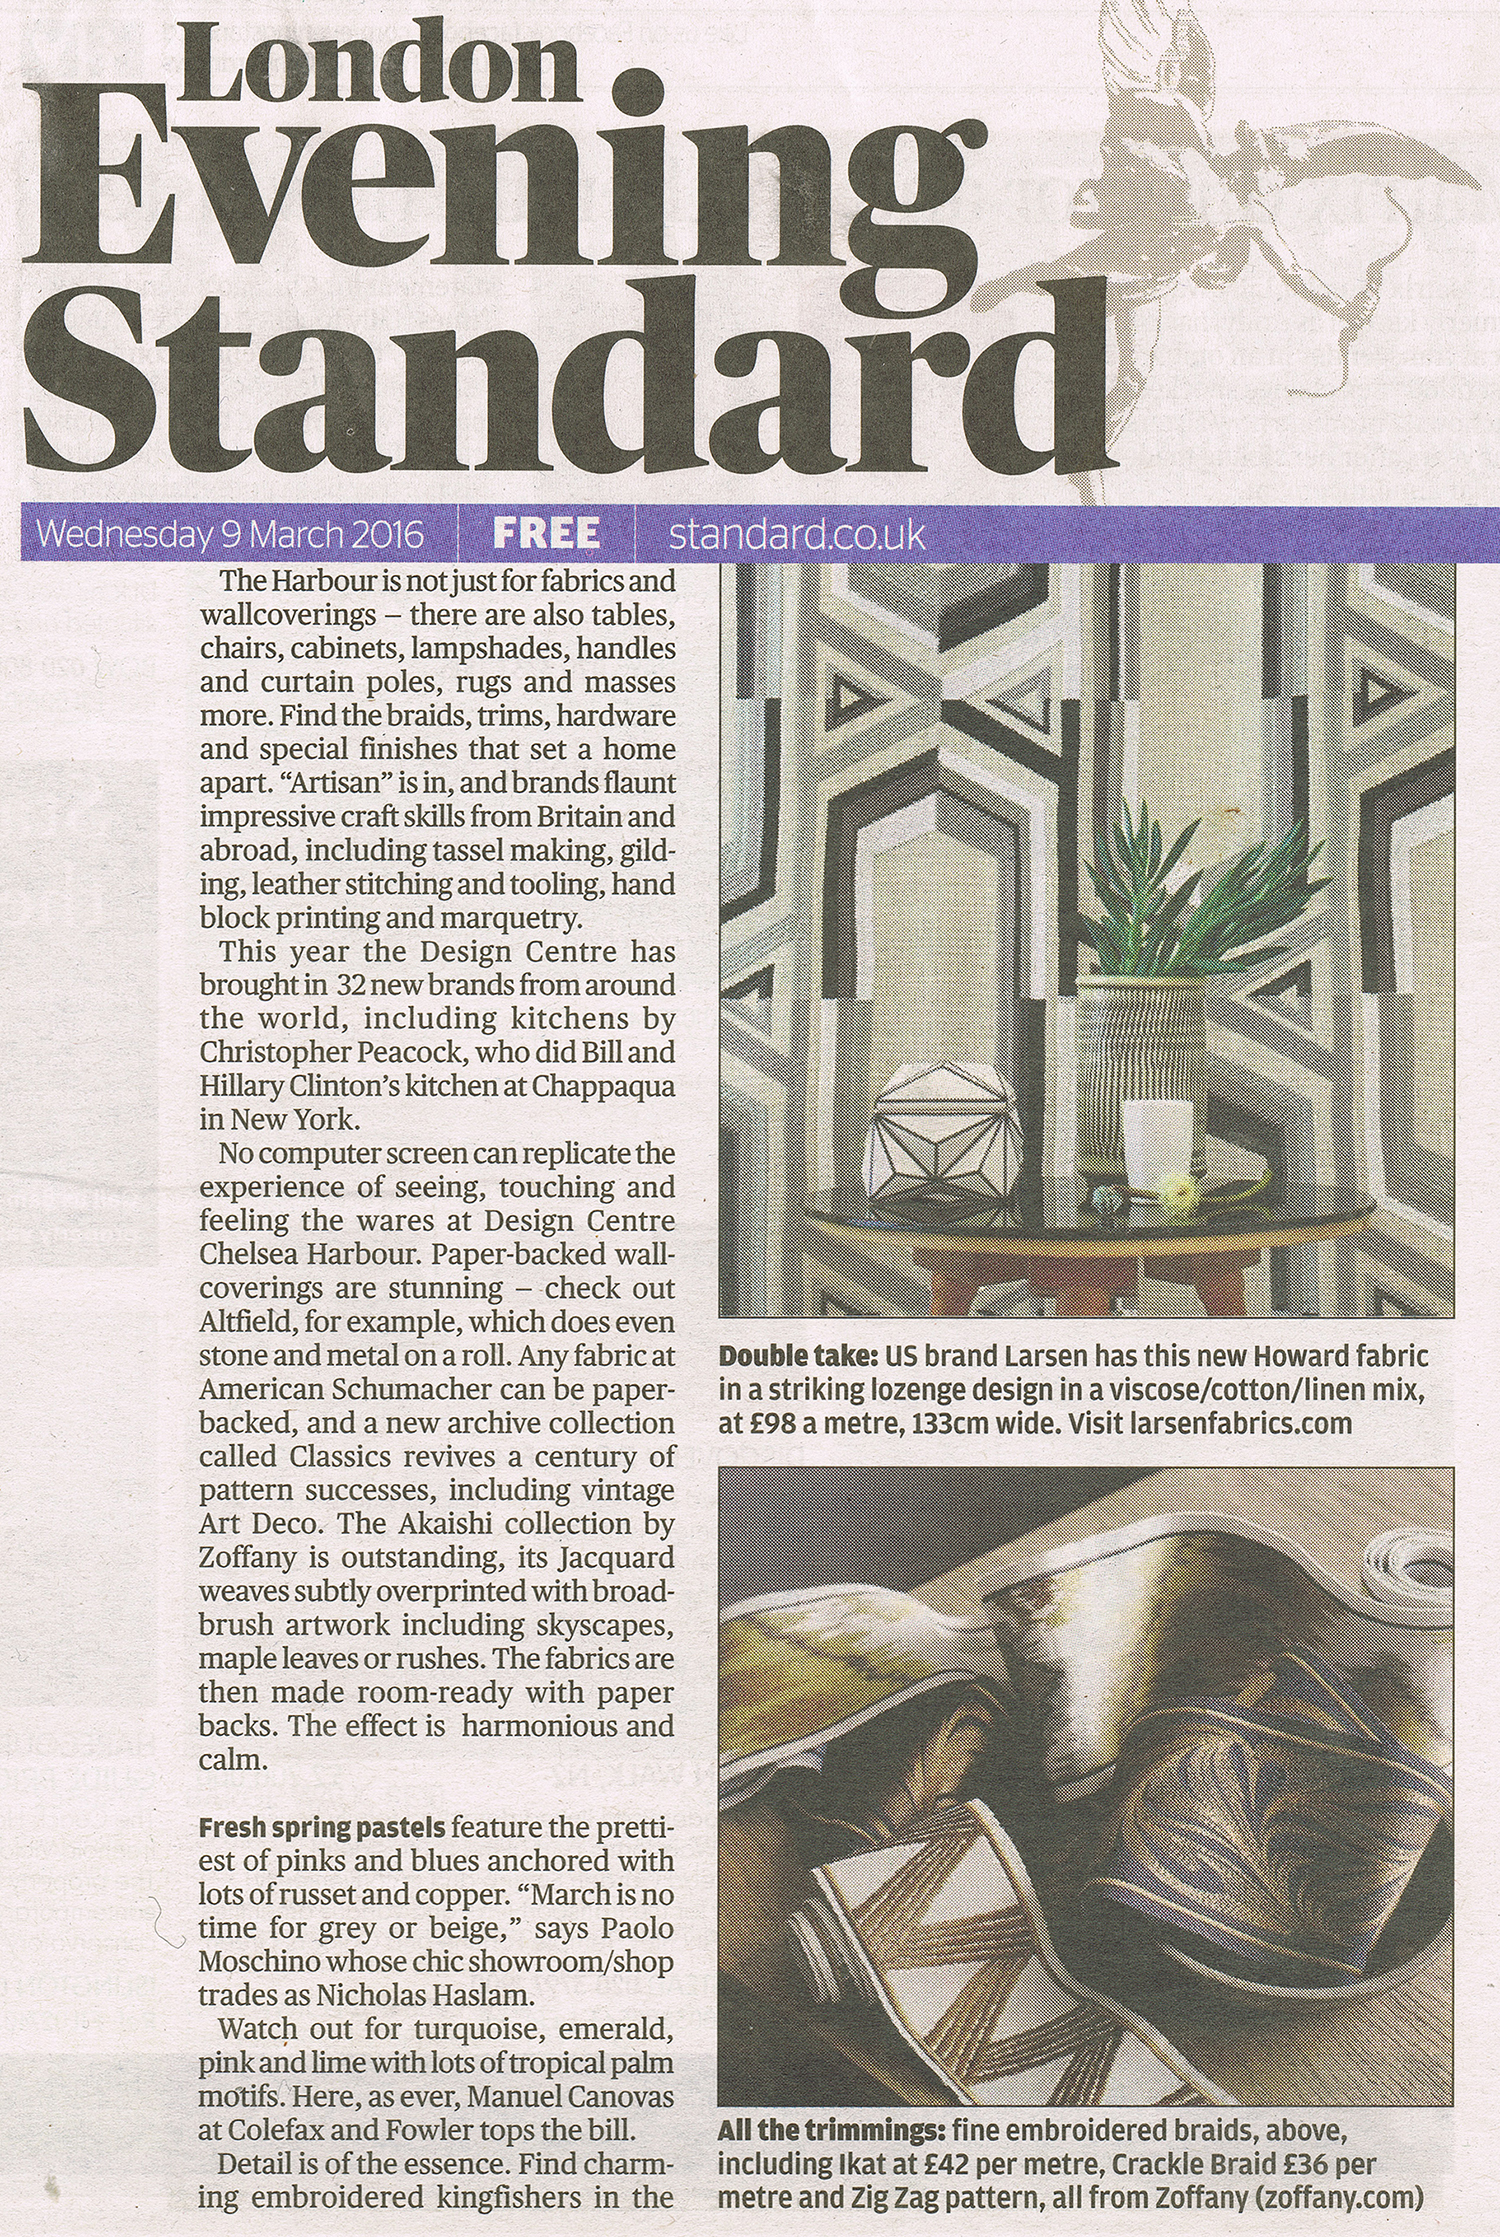 evening standard march 16 web ready.jpg